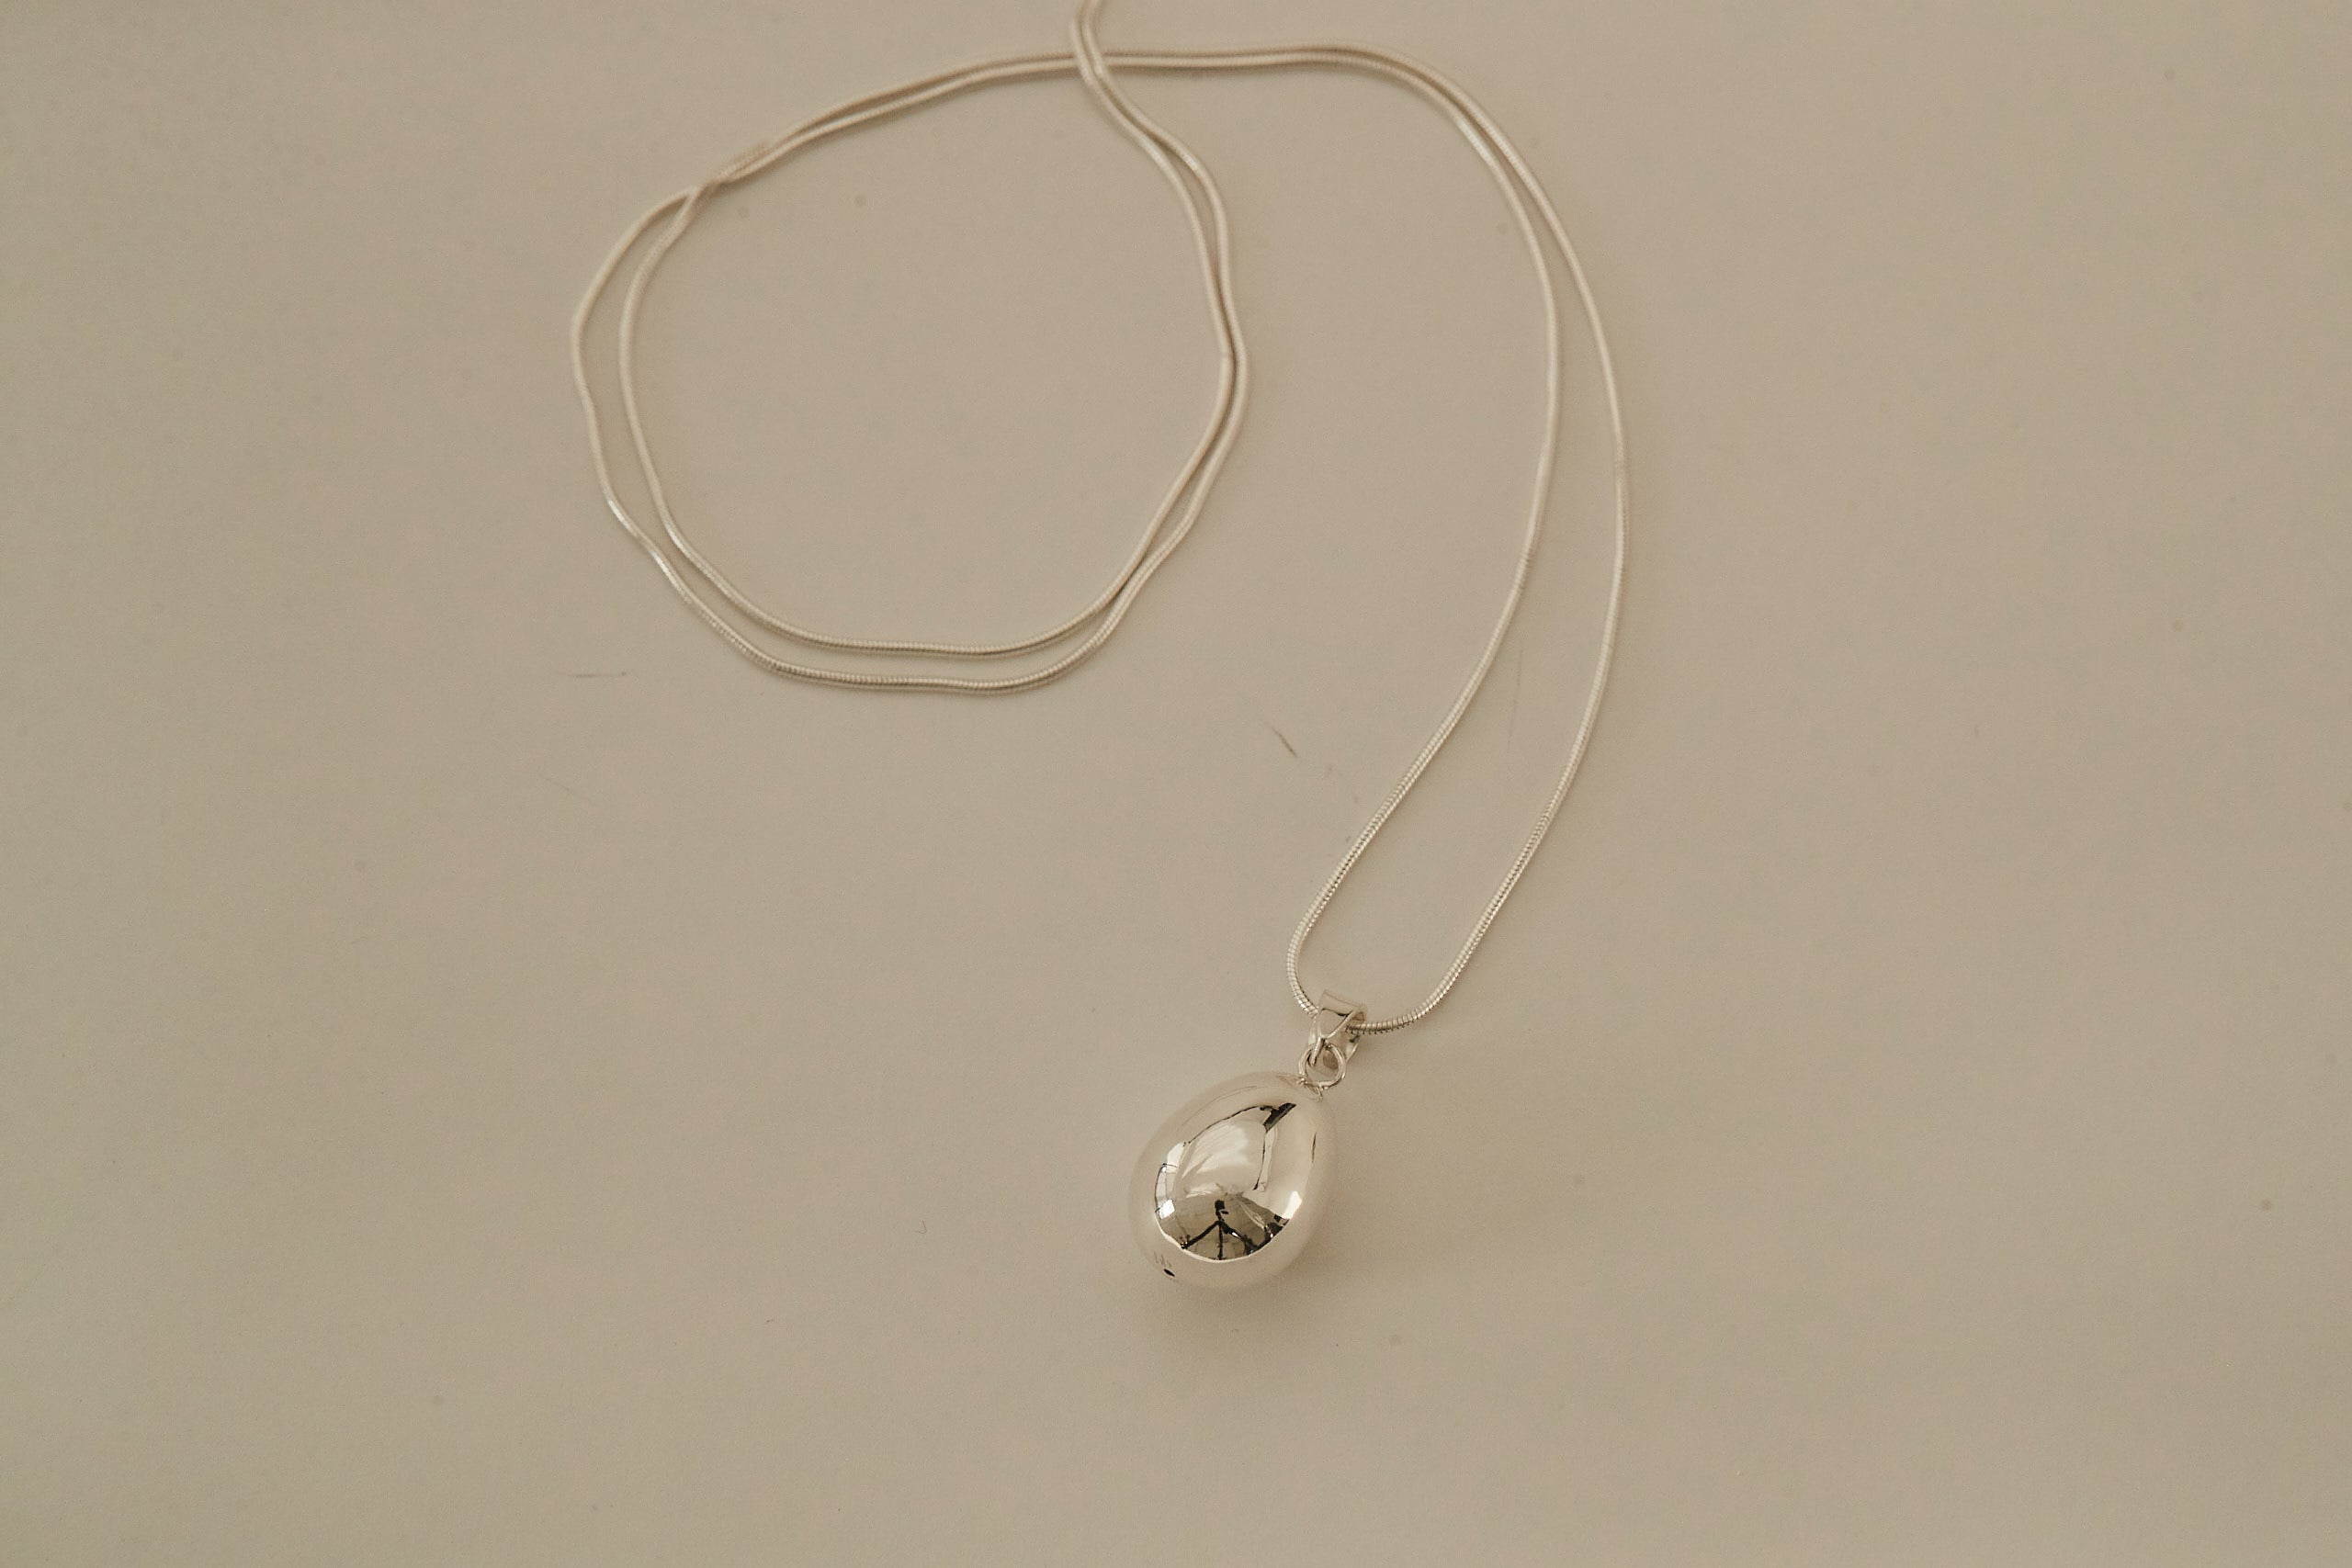 bon bola, 925 maternity necklace